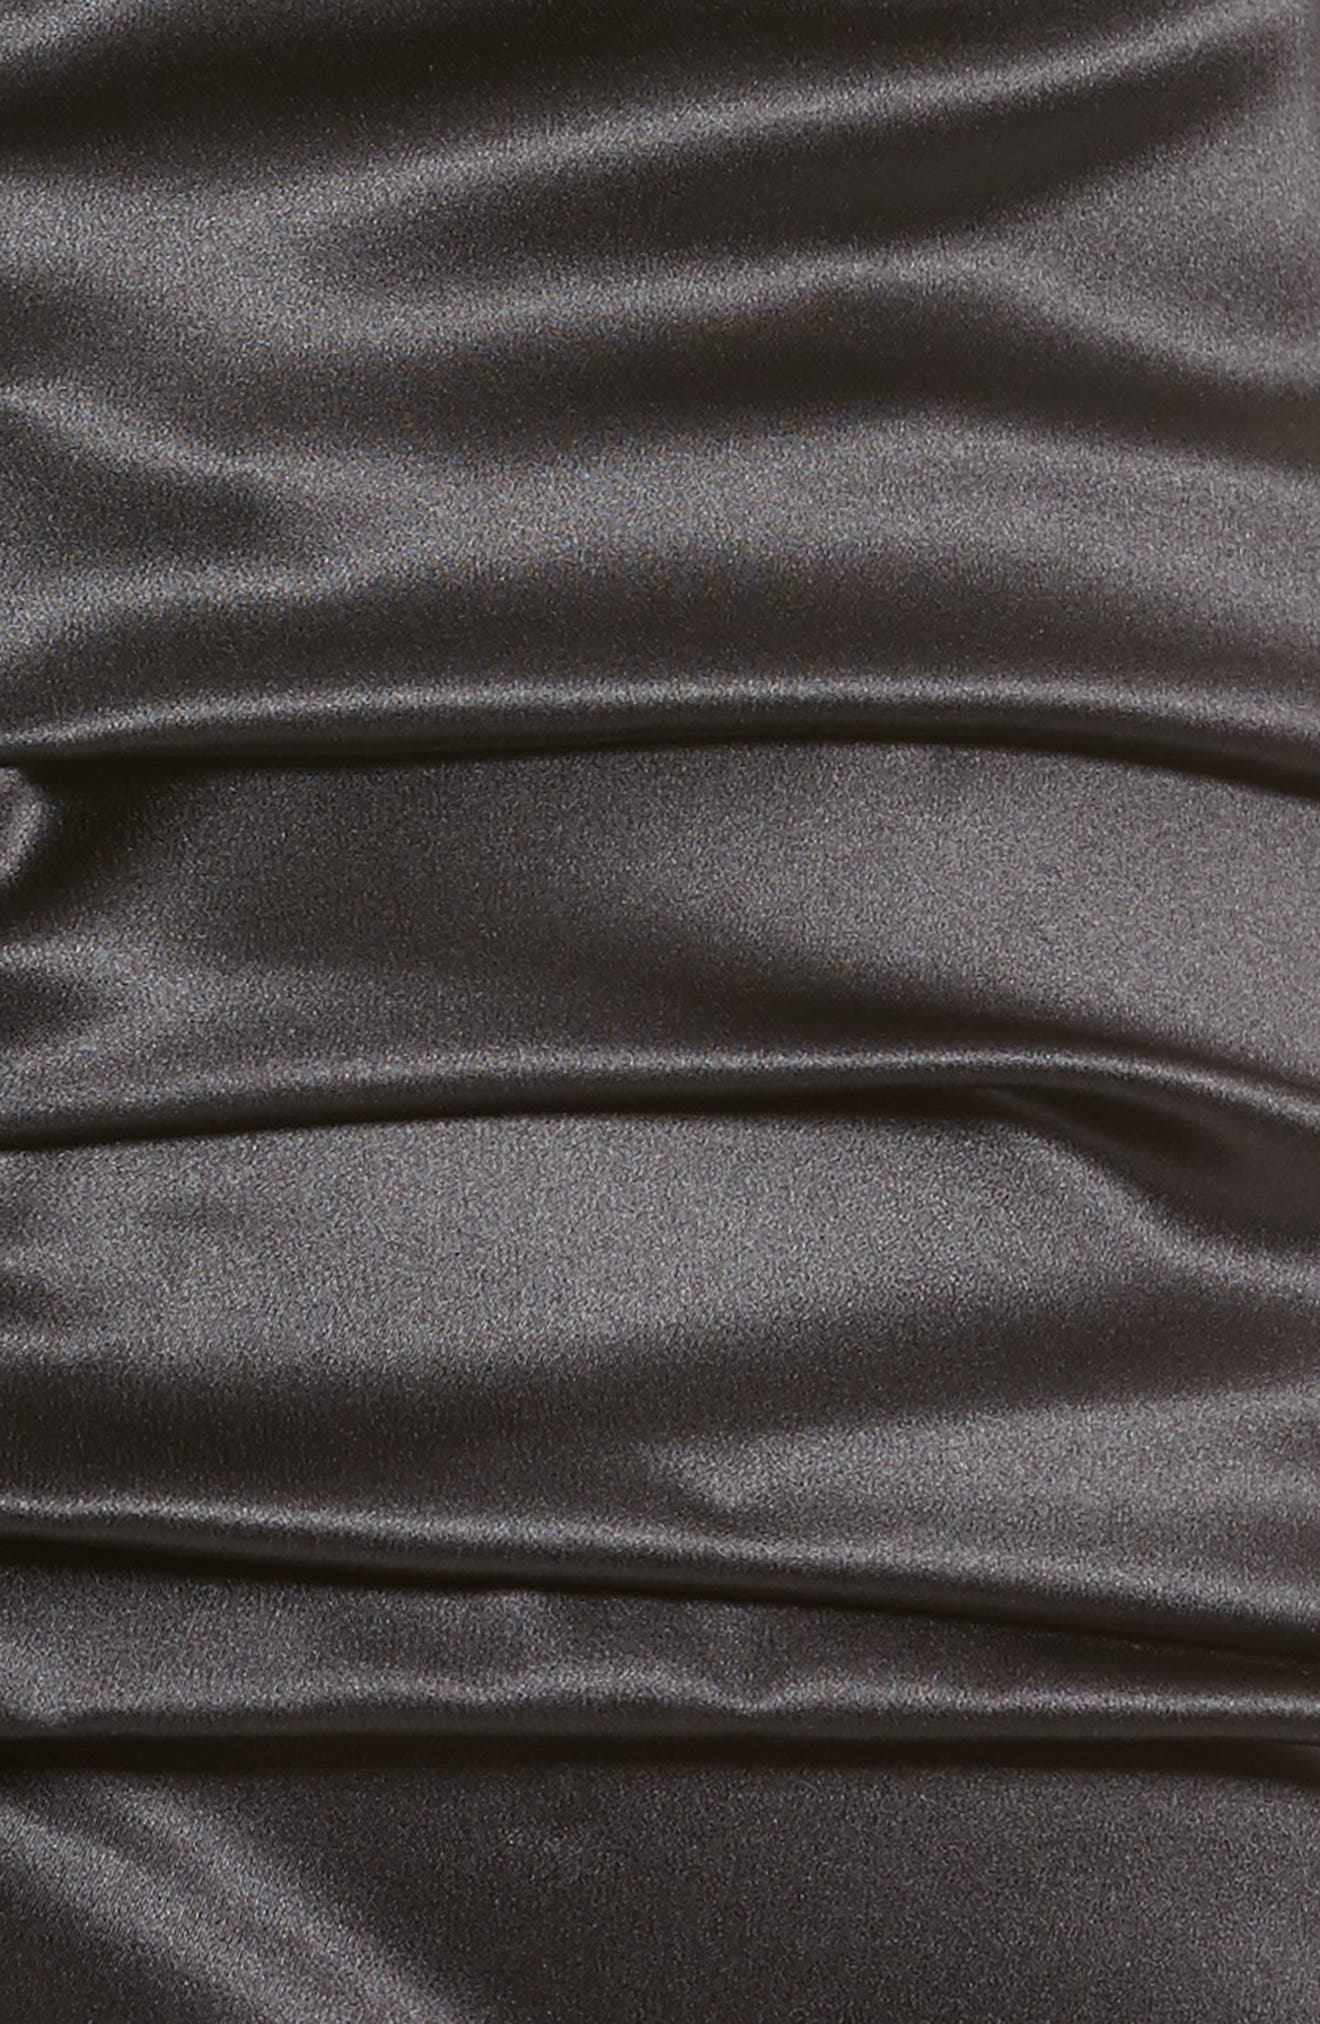 Ruched Stretch Satin Dress,                             Alternate thumbnail 6, color,                             001